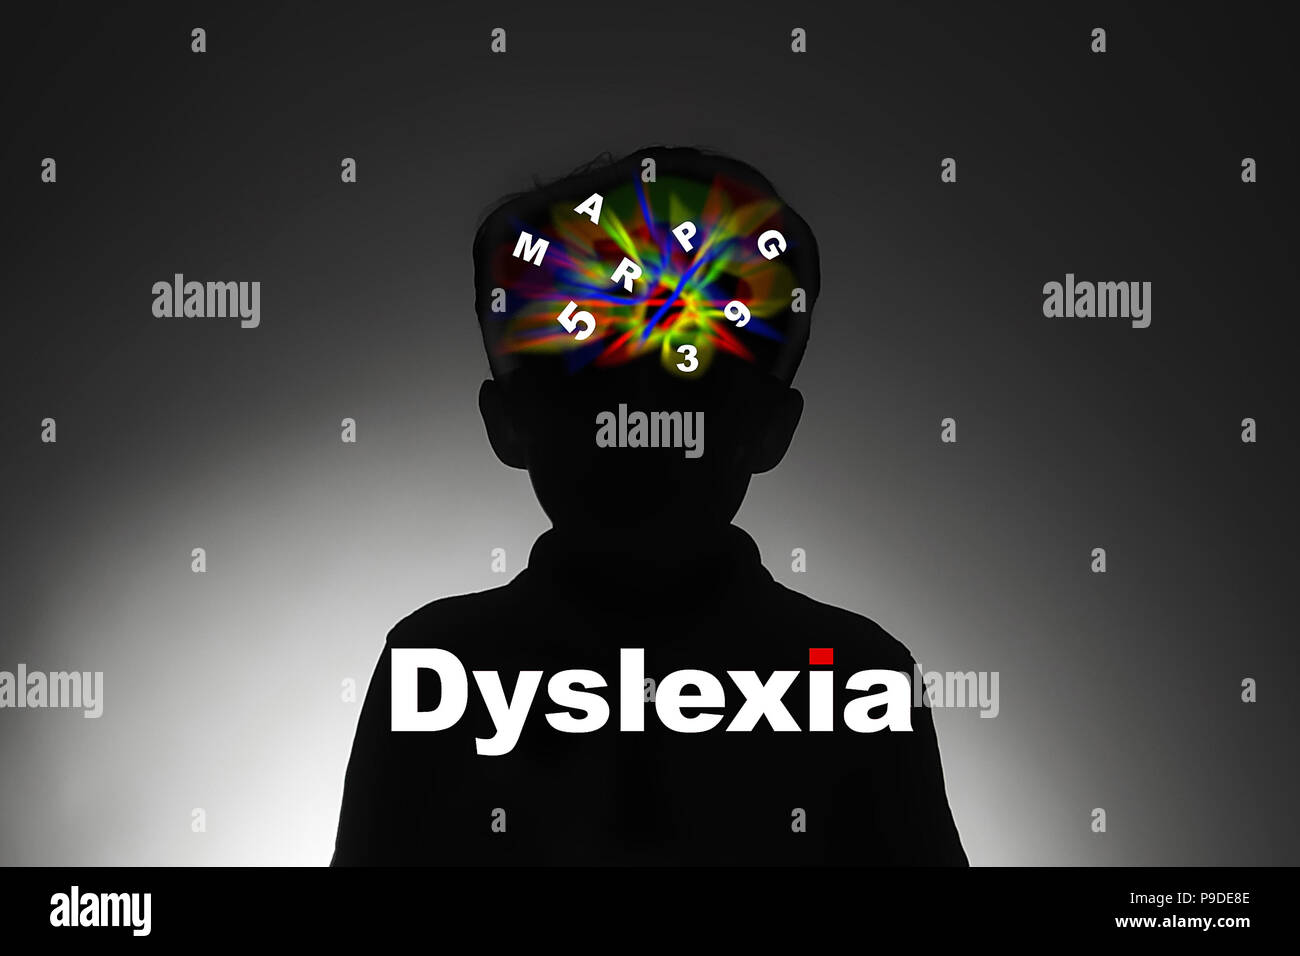 Dyslexia,  difficulty reading, writing and spelling. - Stock Image